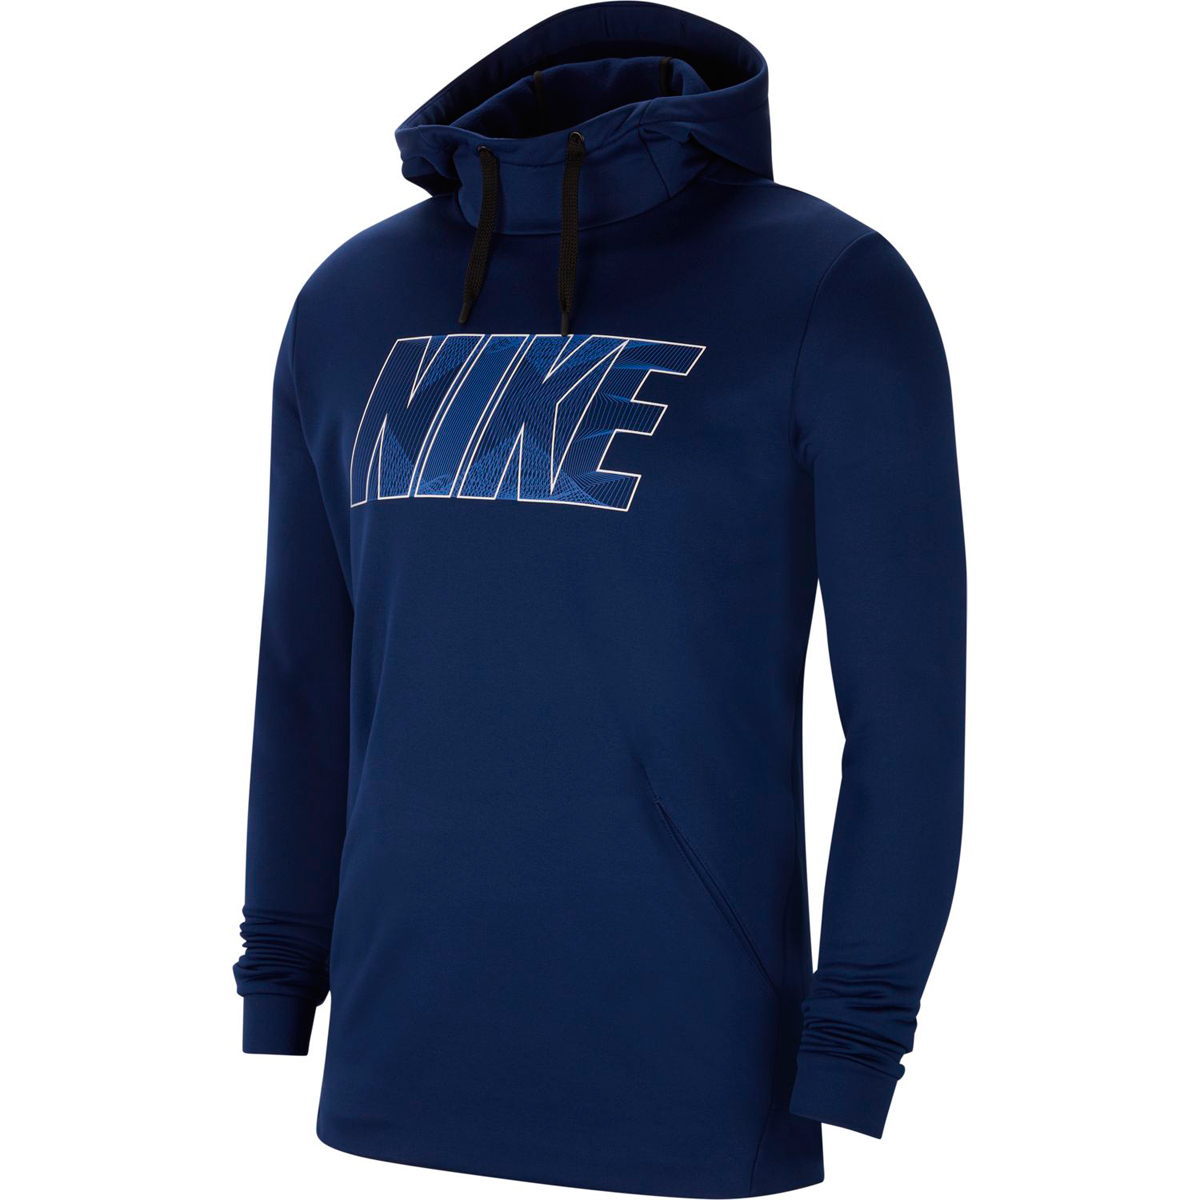 Nike Men's Therma Fleece Pullover Training Top - Blue, L